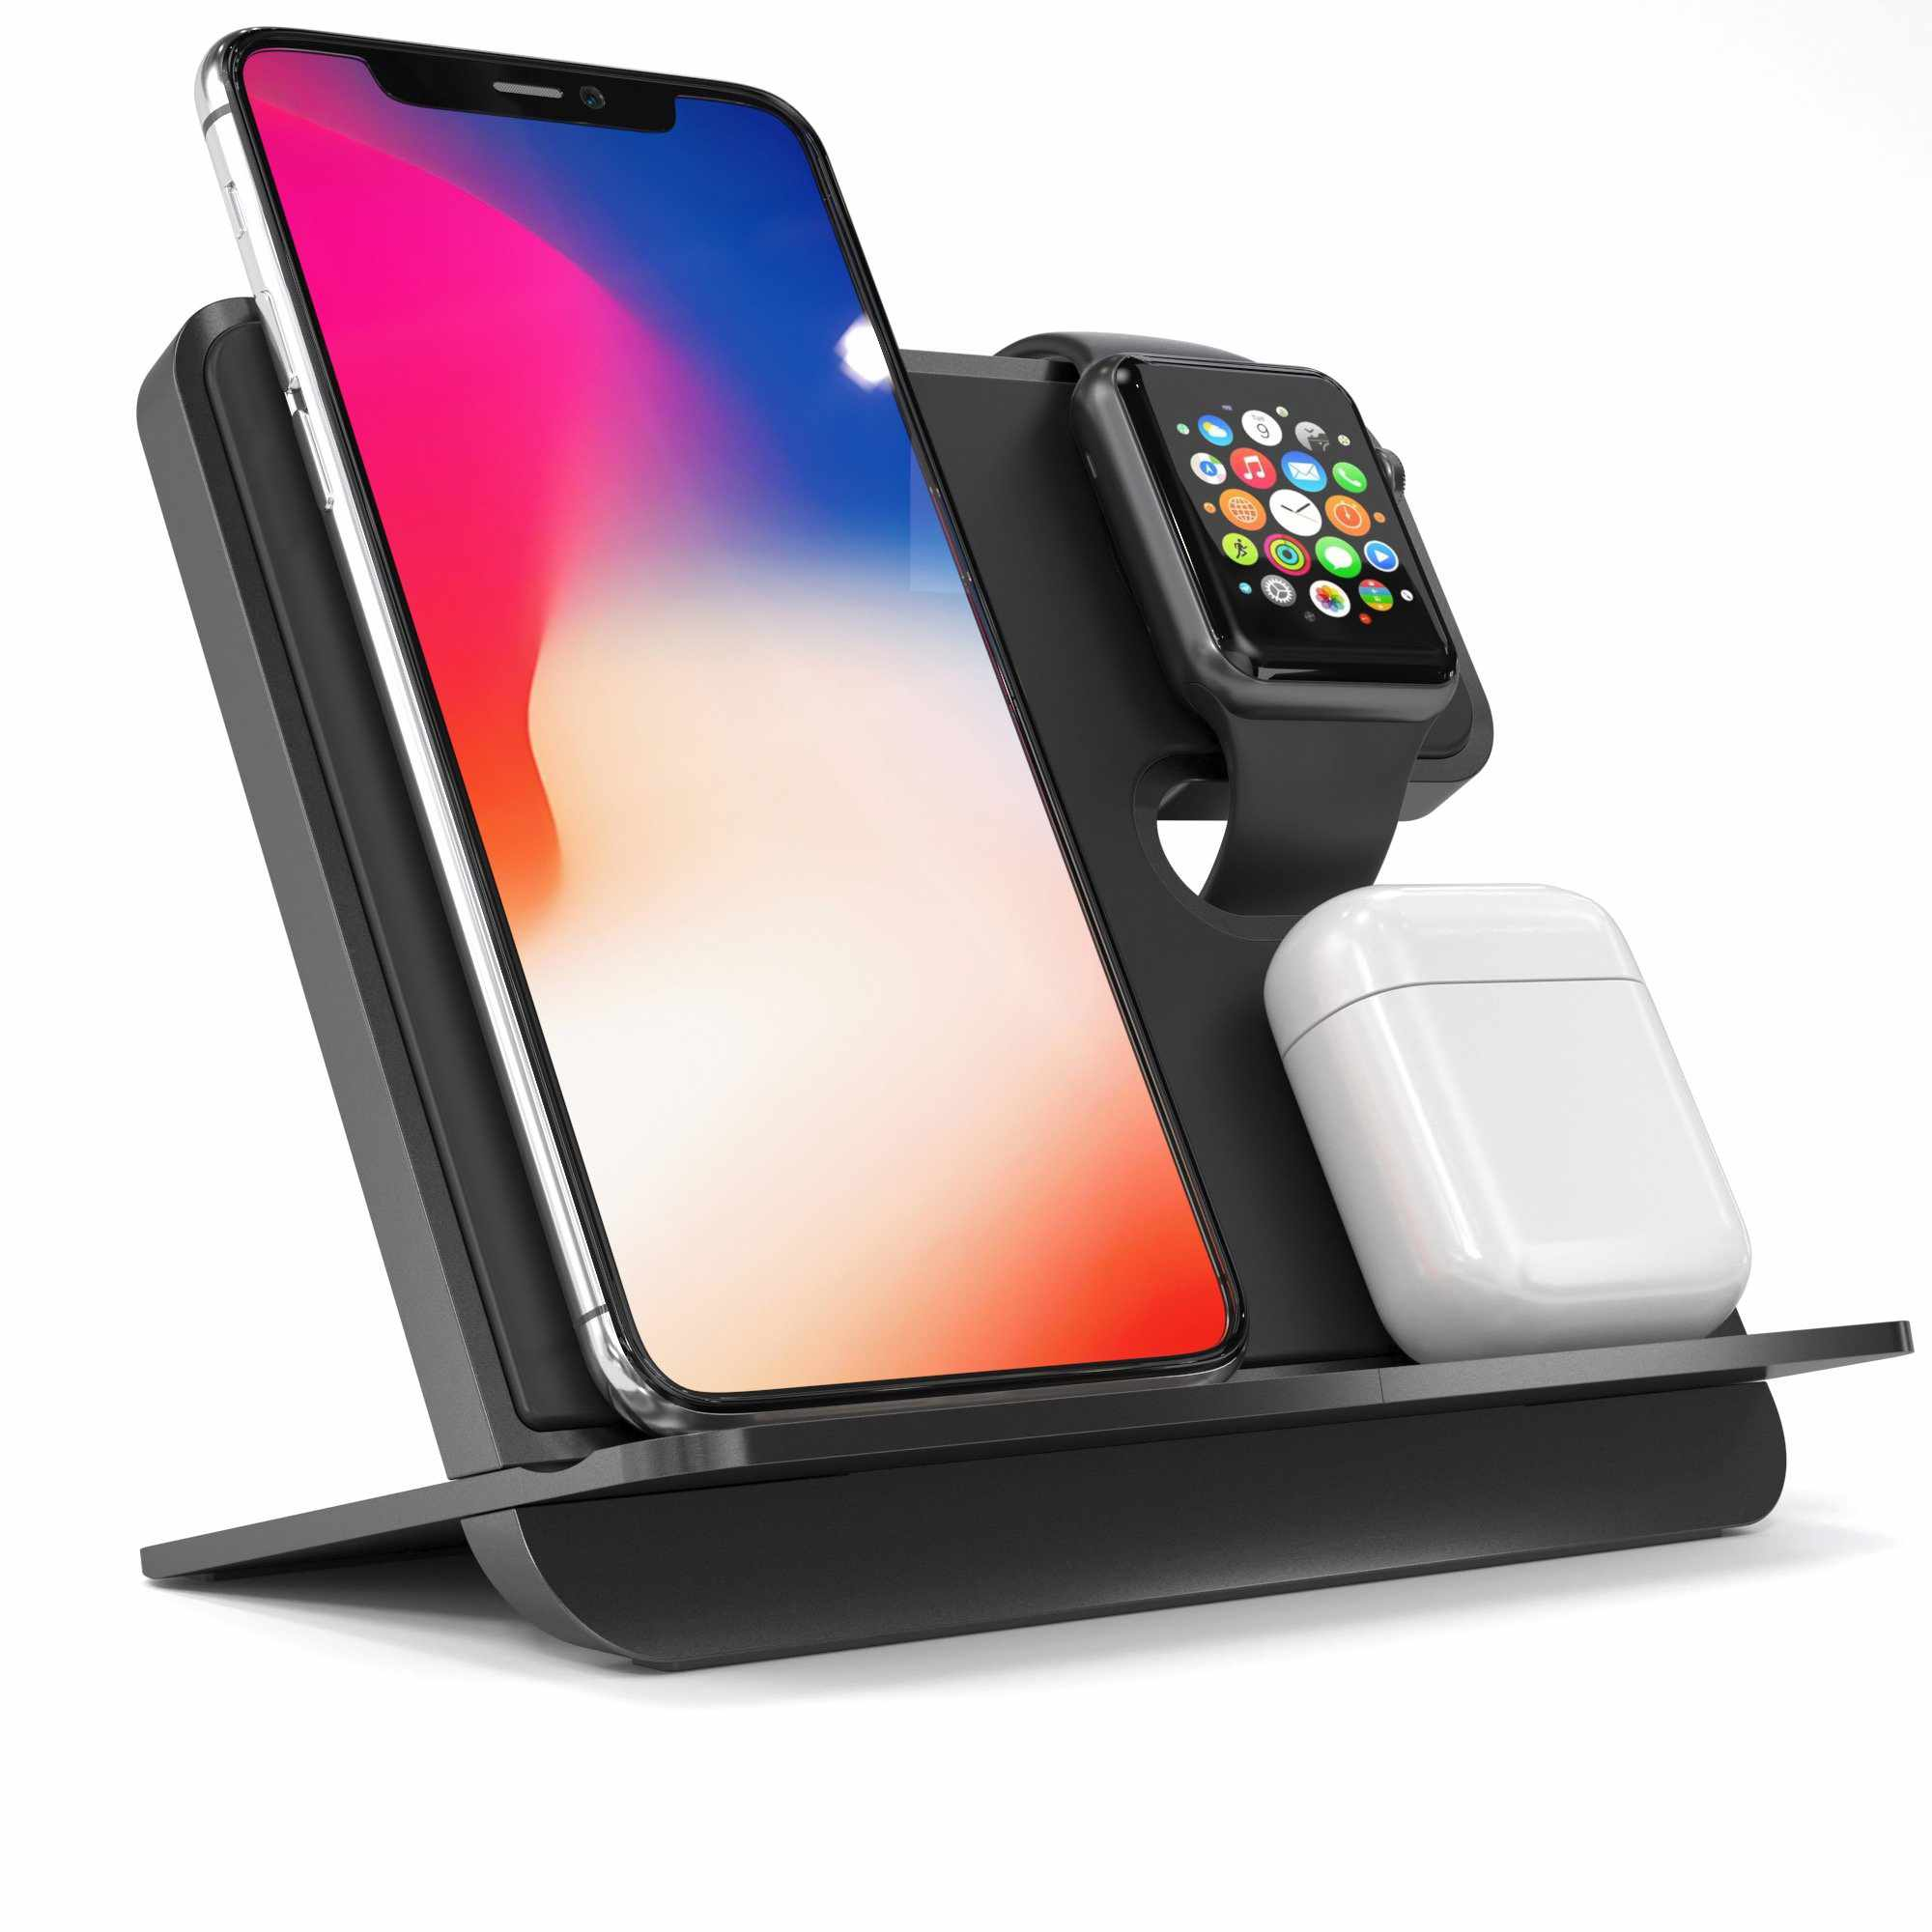 iComboStand Pro 4-In-1 Apple Wireless Charging Station - iComboStand